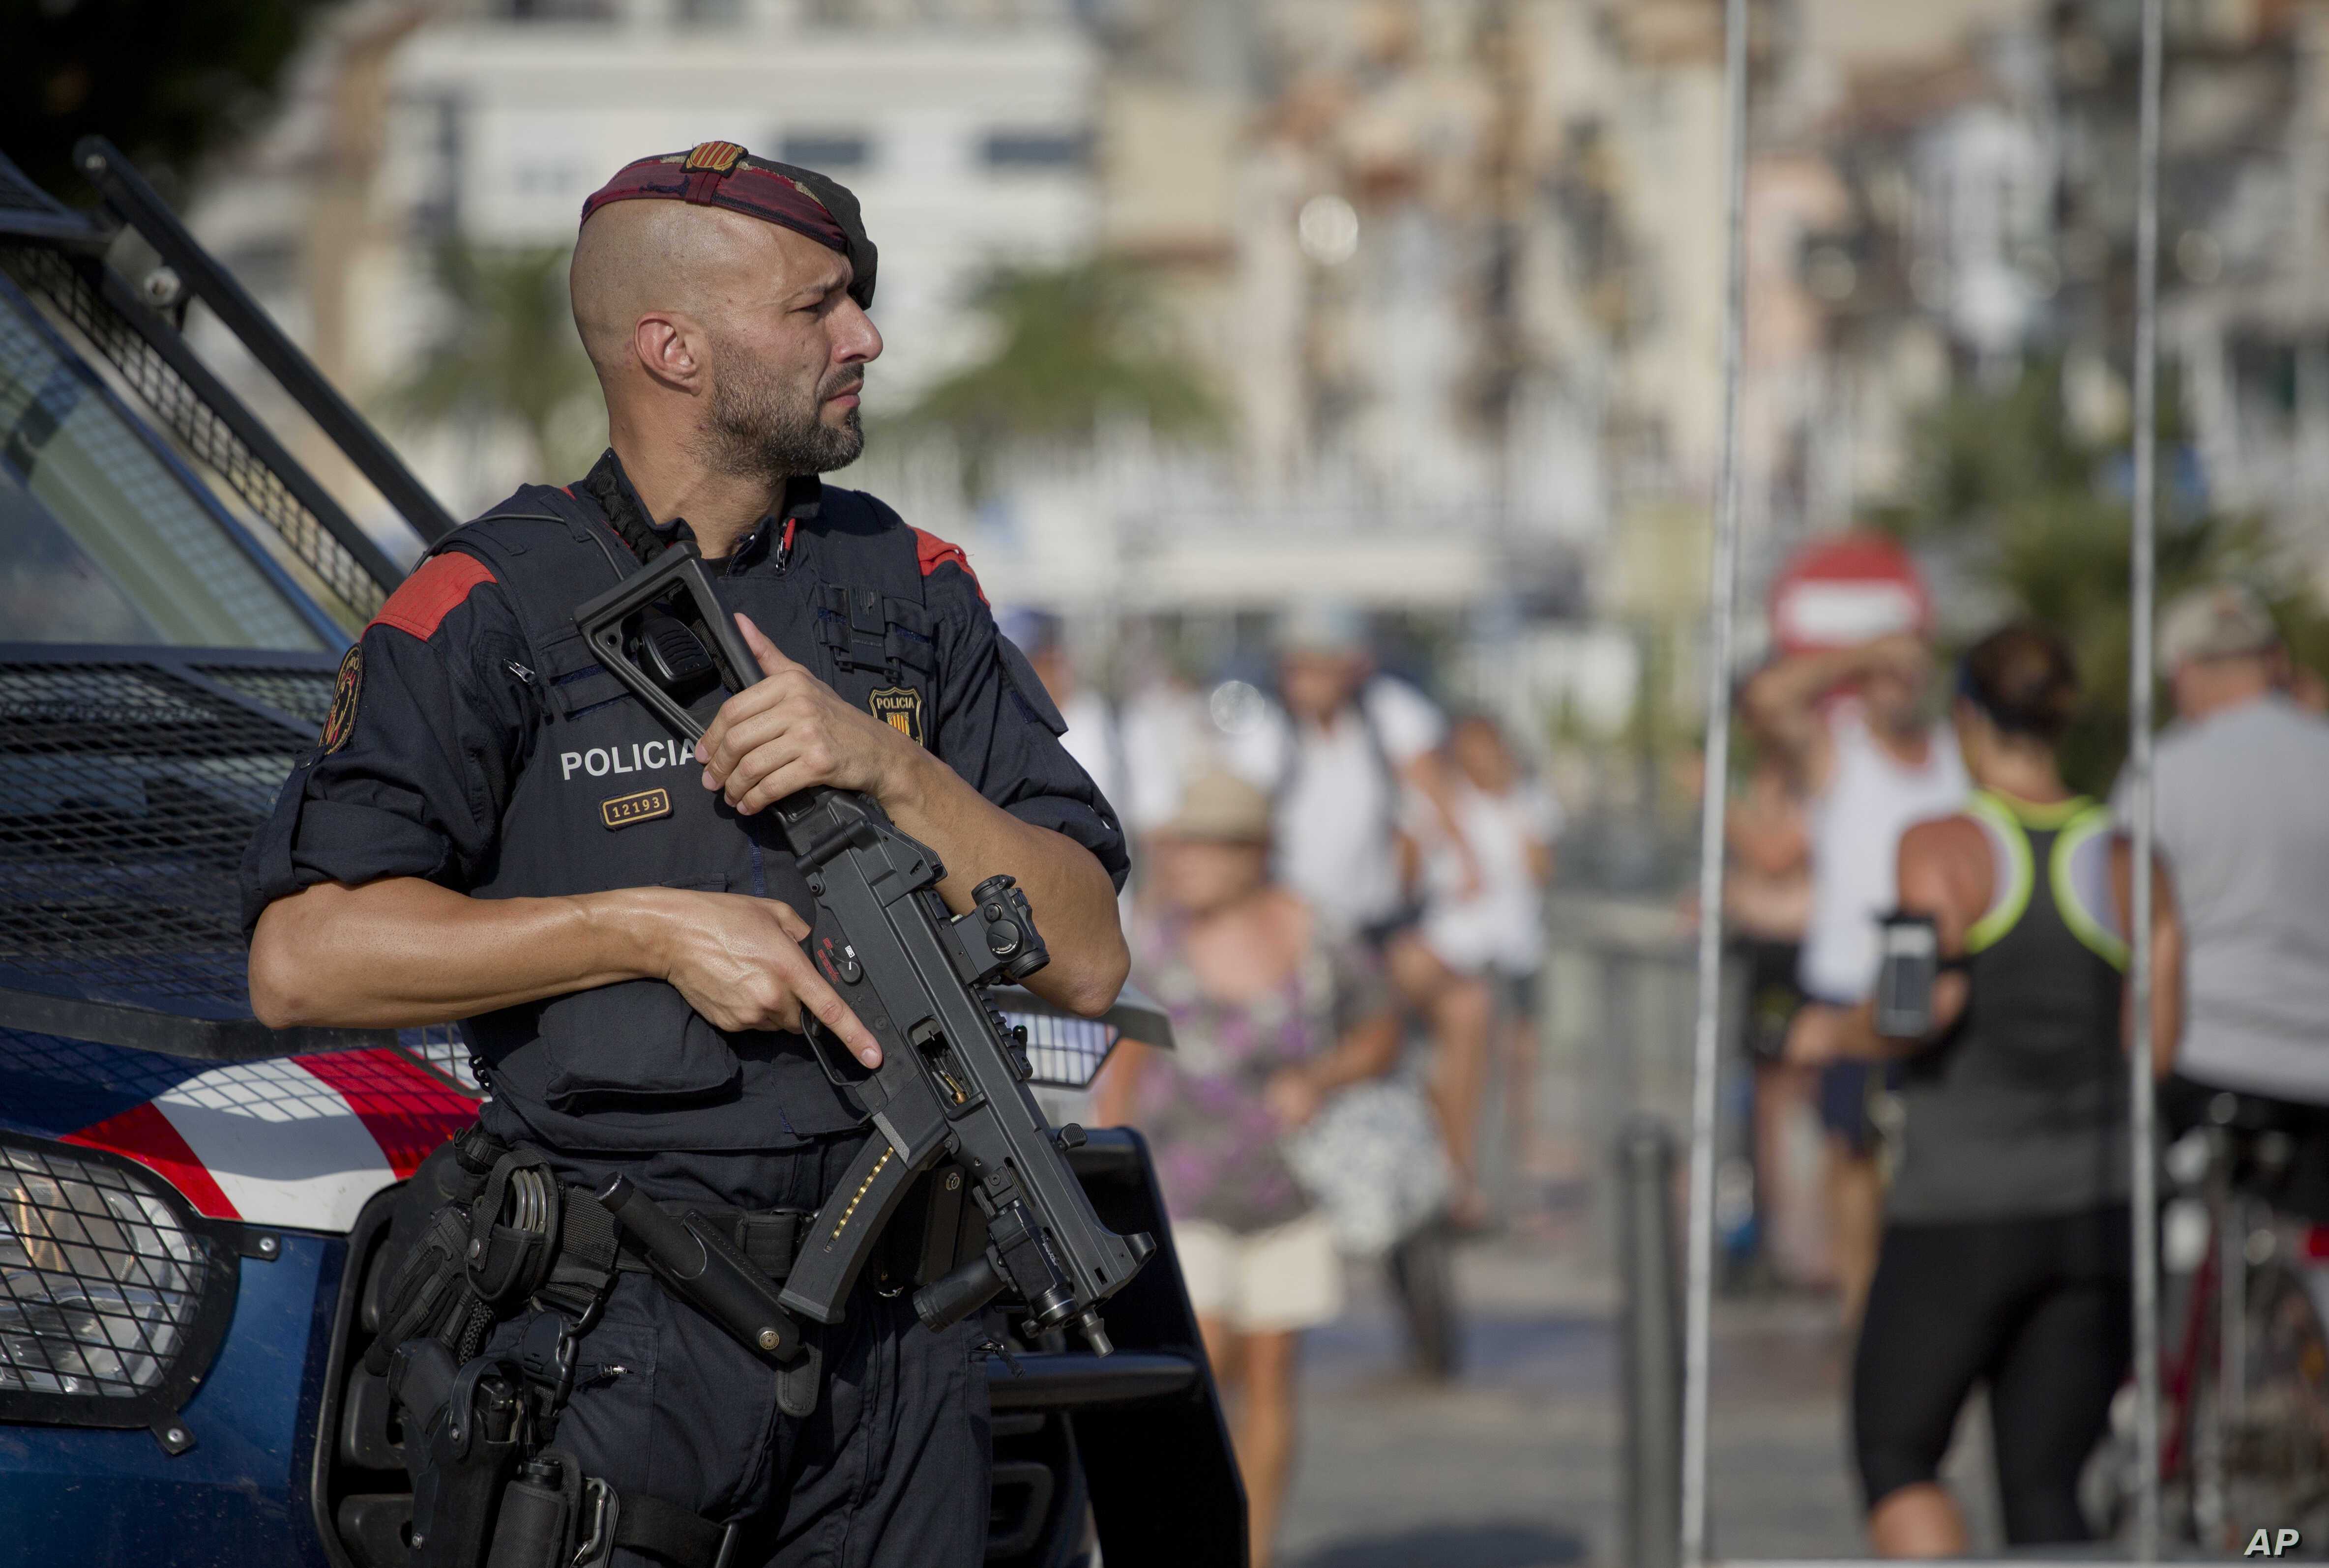 An armed policeman stands on the spot where terrorist were shot by police in Cambrils, Spain, Aug. 18, 2017.